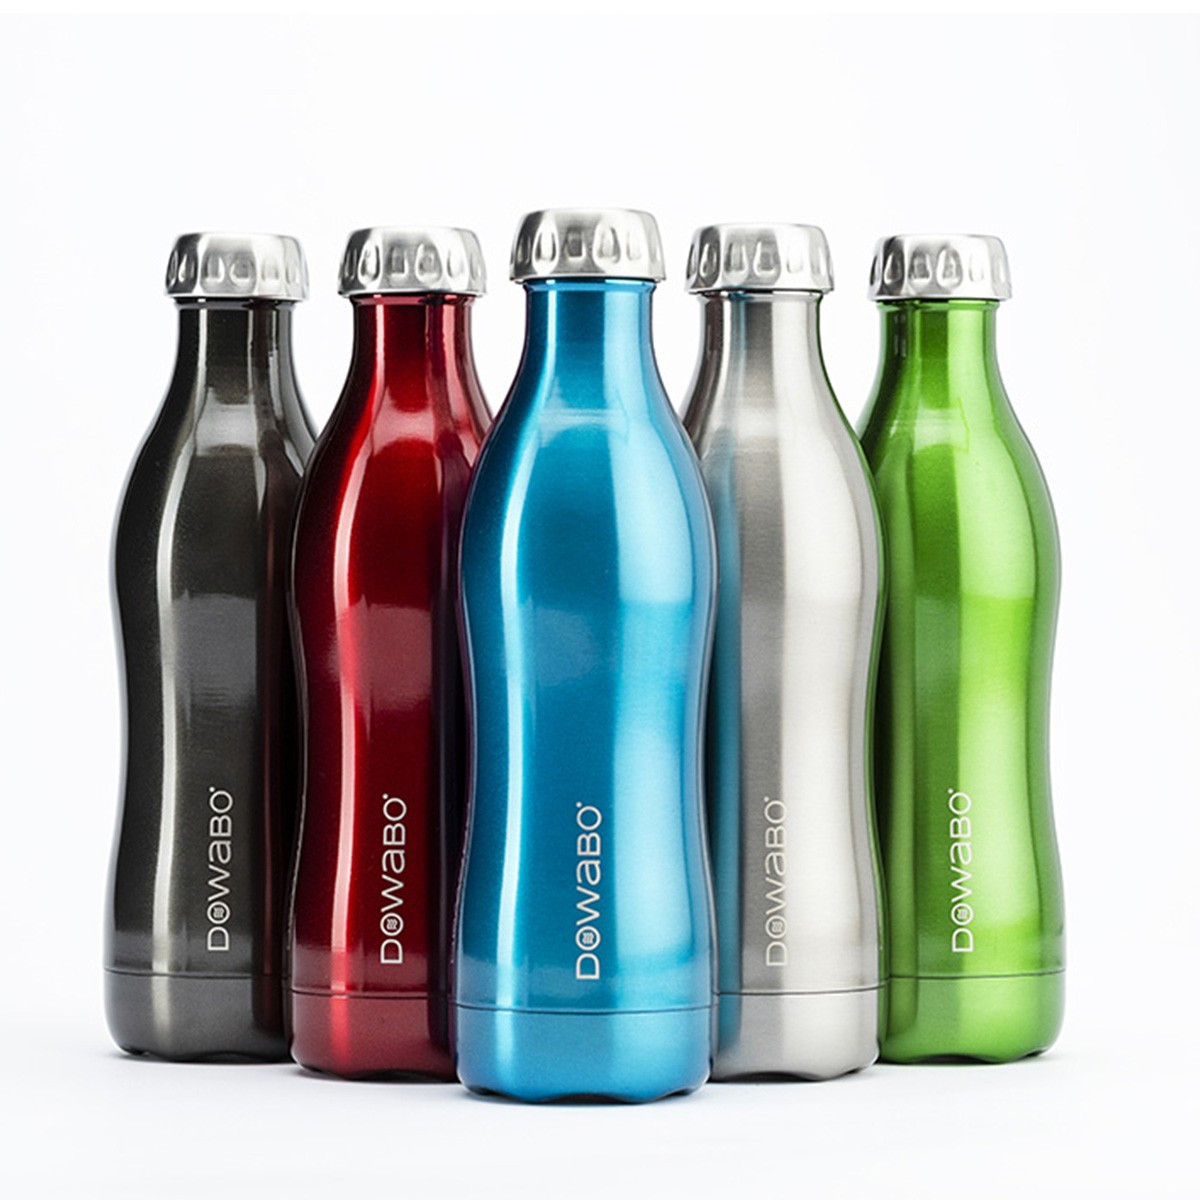 DOWABO® Bottle - Green 750ml Metallic Collection